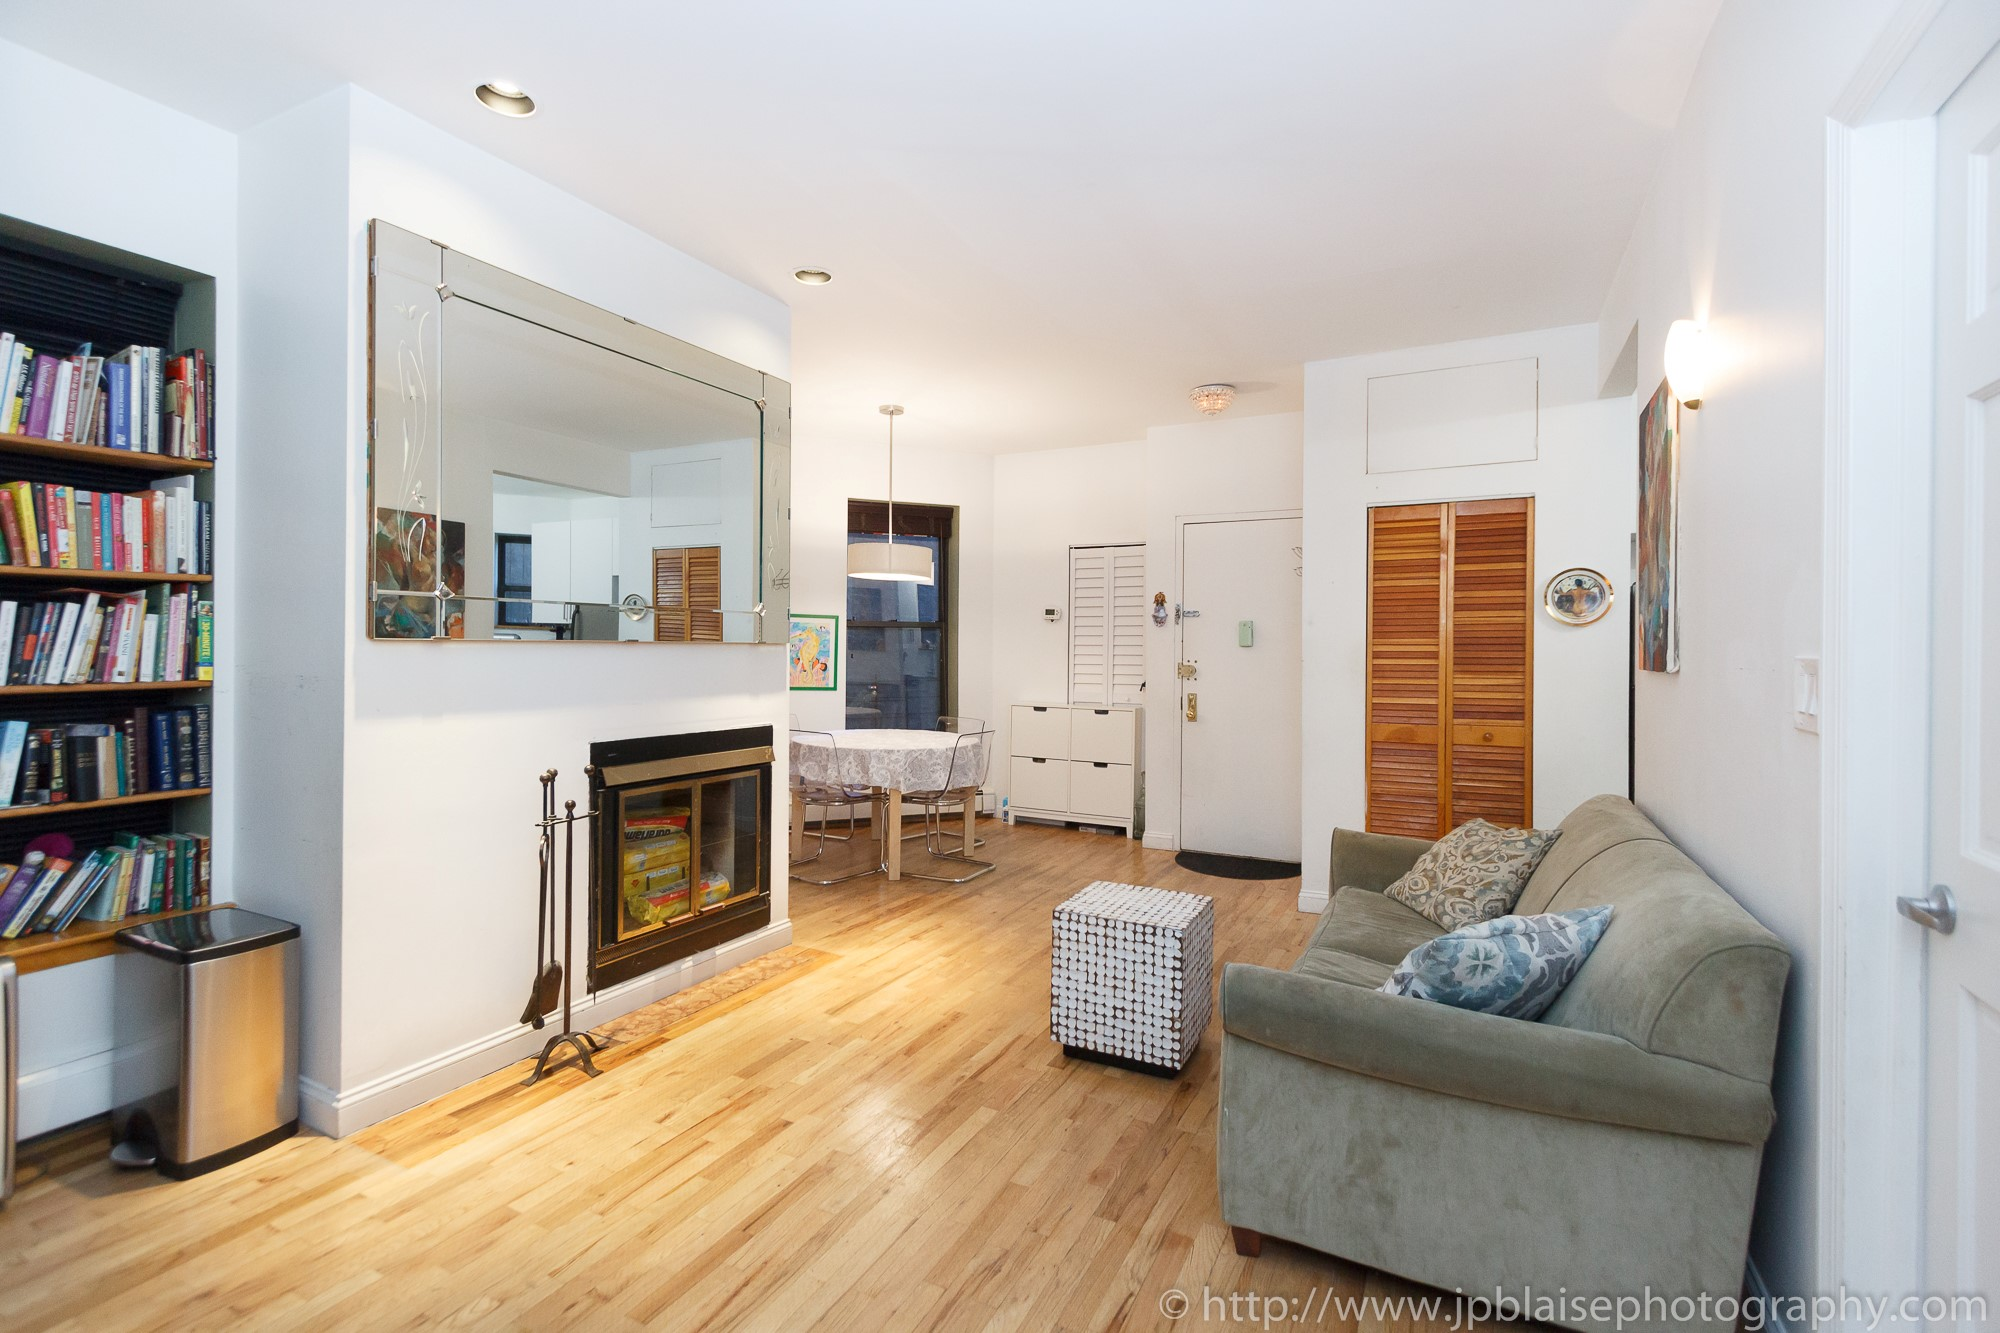 New York City apartment adventures Two bedroom unit on the Upper East Side